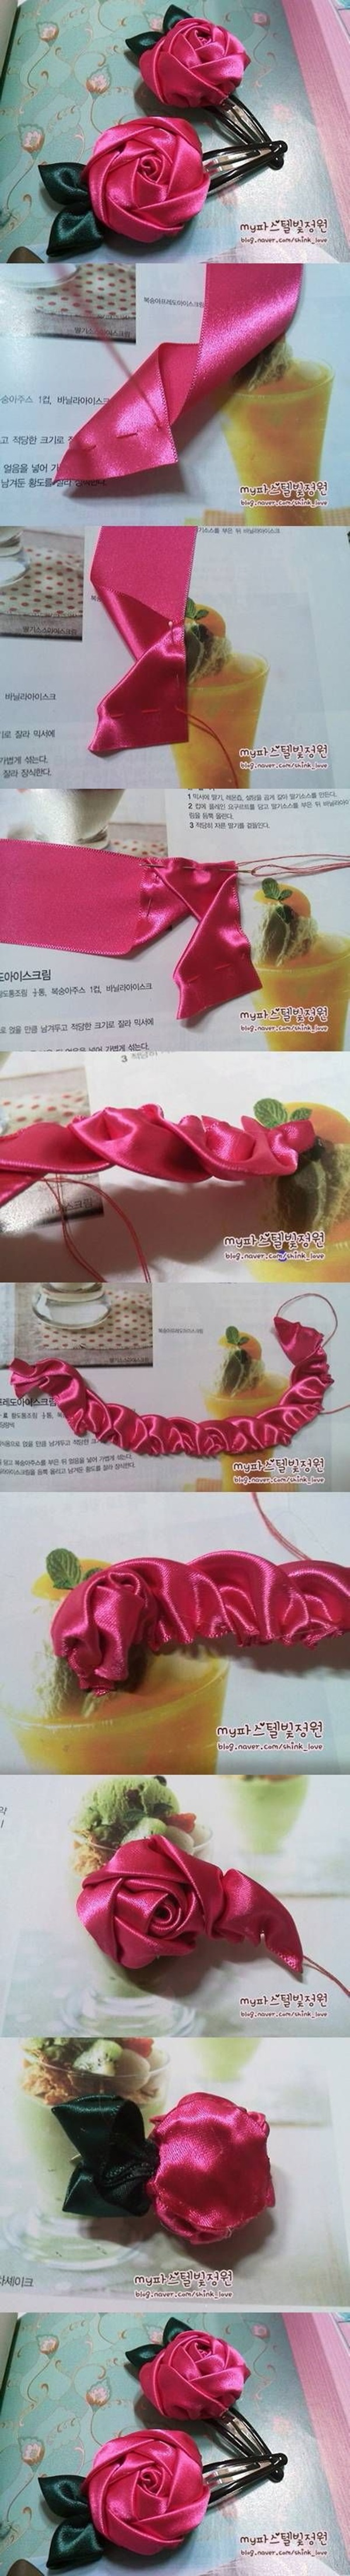 Different Ways to Use Ribbons 3